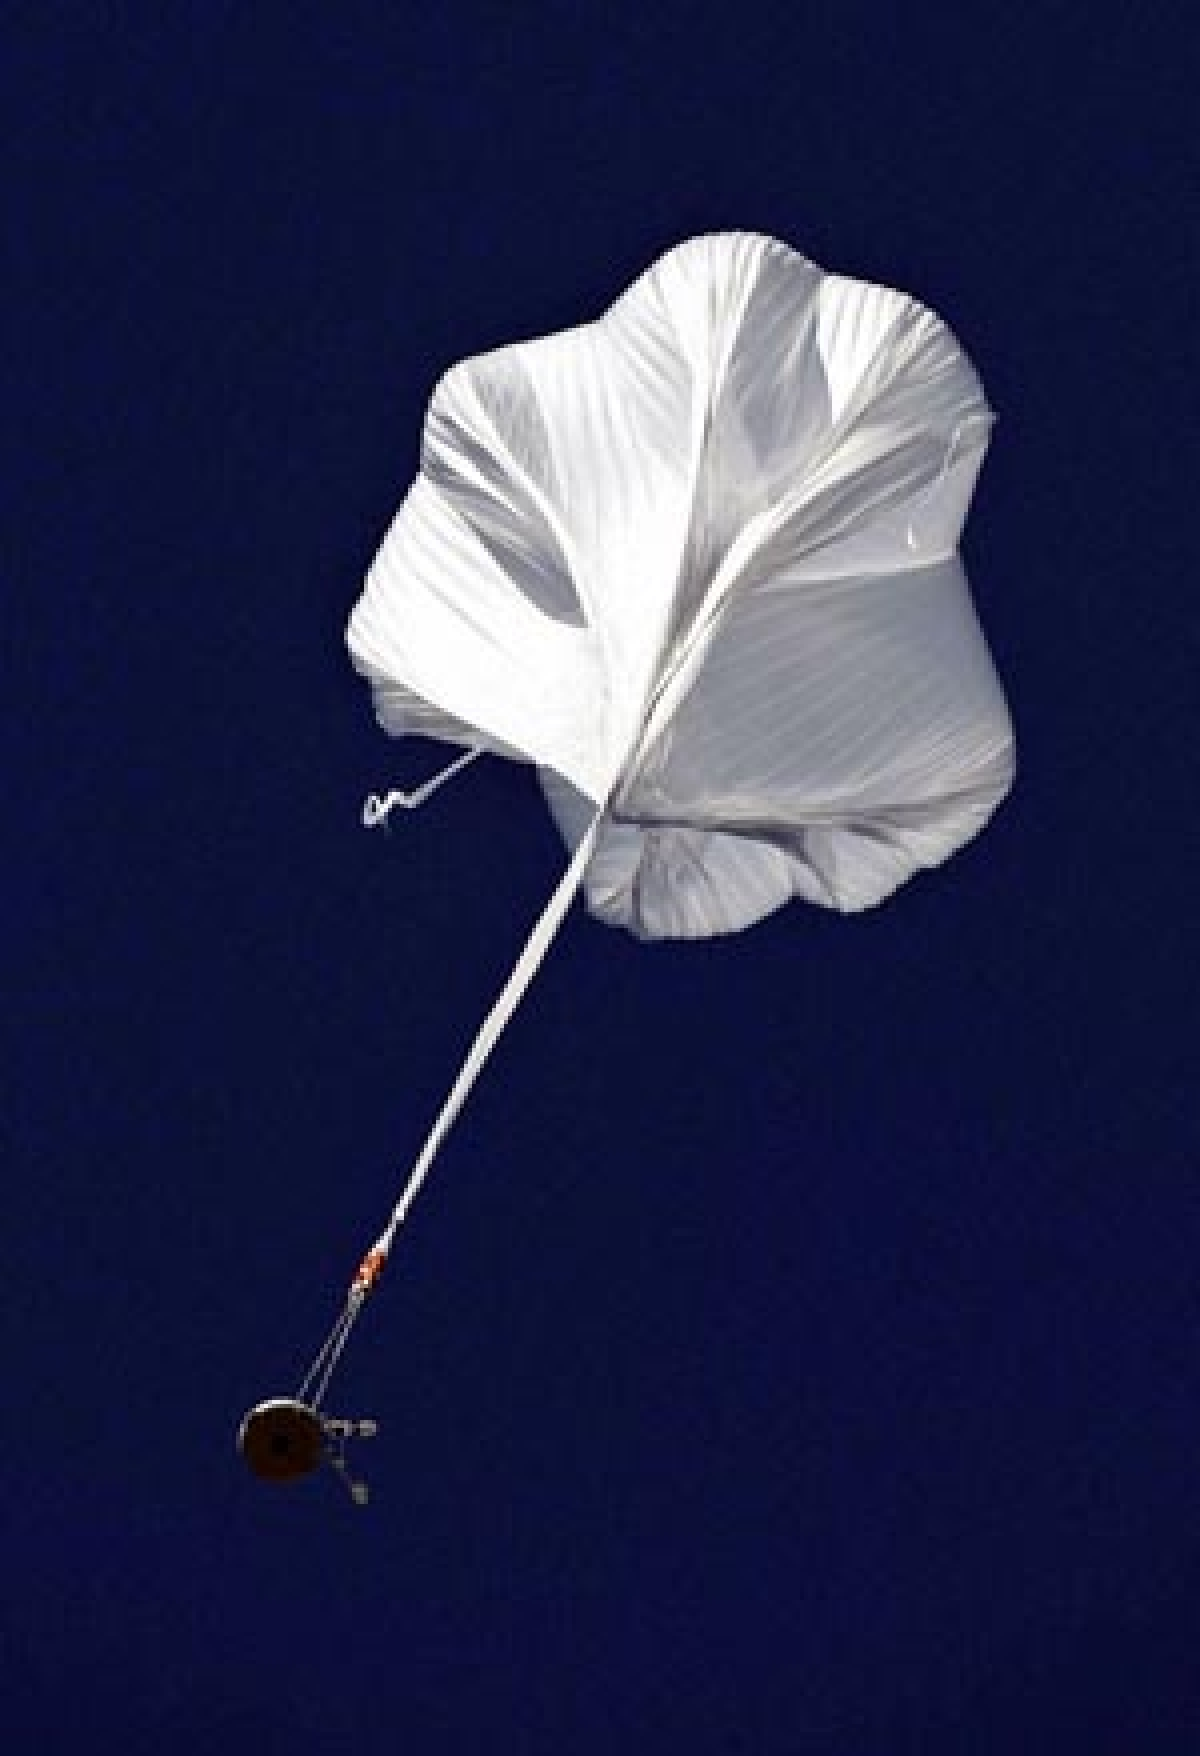 Daredevil jumps 25 miles, lands safely on his feet